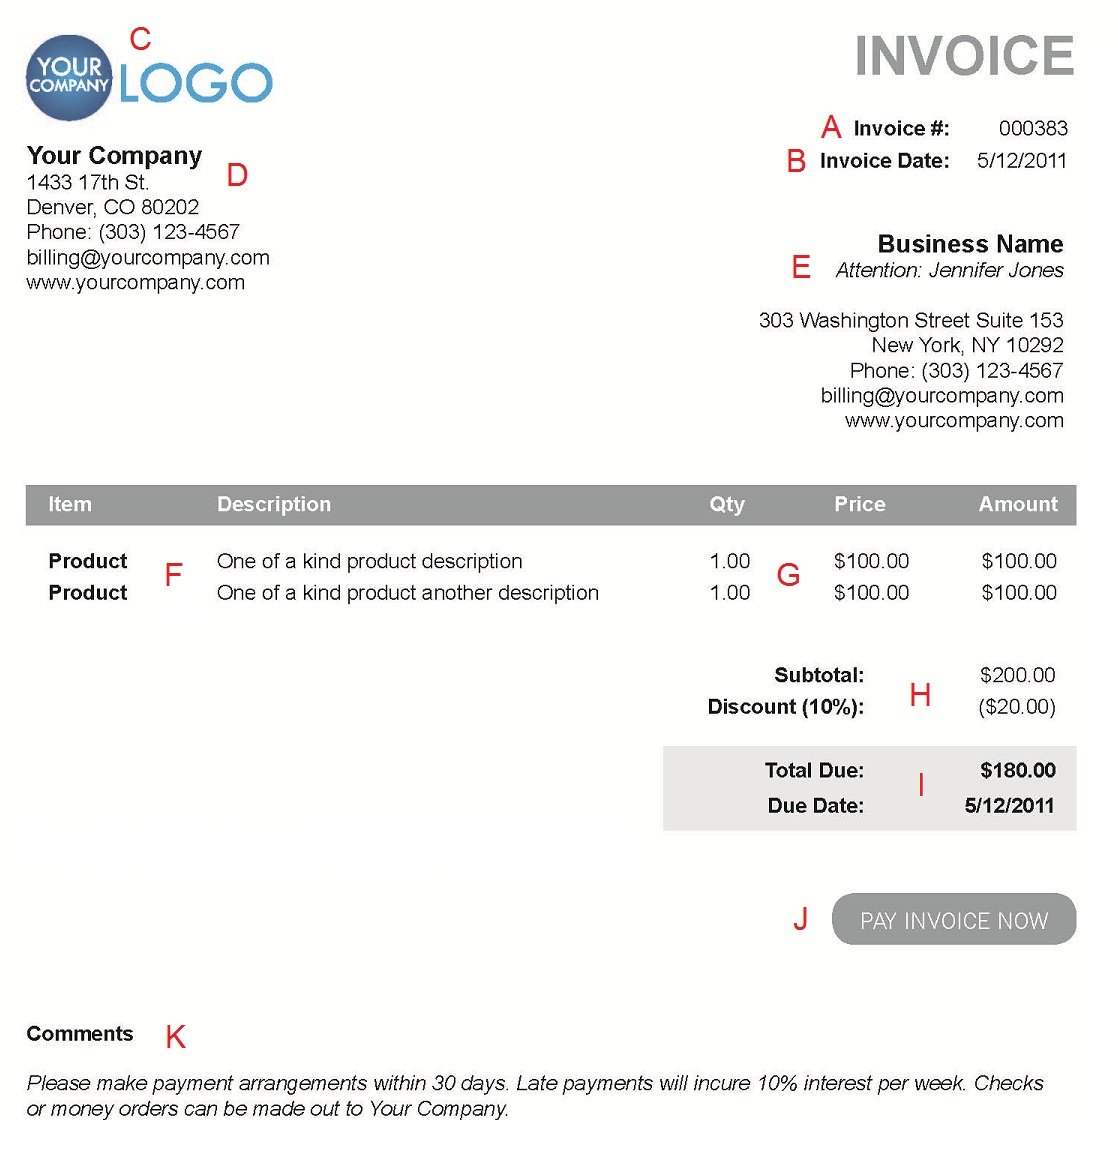 Opposenewapstandardsus  Fascinating The  Different Sections Of An Electronic Payment Invoice With Excellent A  With Archaic Factor Invoice Also Simple Invoices Template In Addition Invoice Template For Excel  And Invoice Packing List As Well As Cis Invoice Additionally Discounting Invoices From Paysimplecom With Opposenewapstandardsus  Excellent The  Different Sections Of An Electronic Payment Invoice With Archaic A  And Fascinating Factor Invoice Also Simple Invoices Template In Addition Invoice Template For Excel  From Paysimplecom